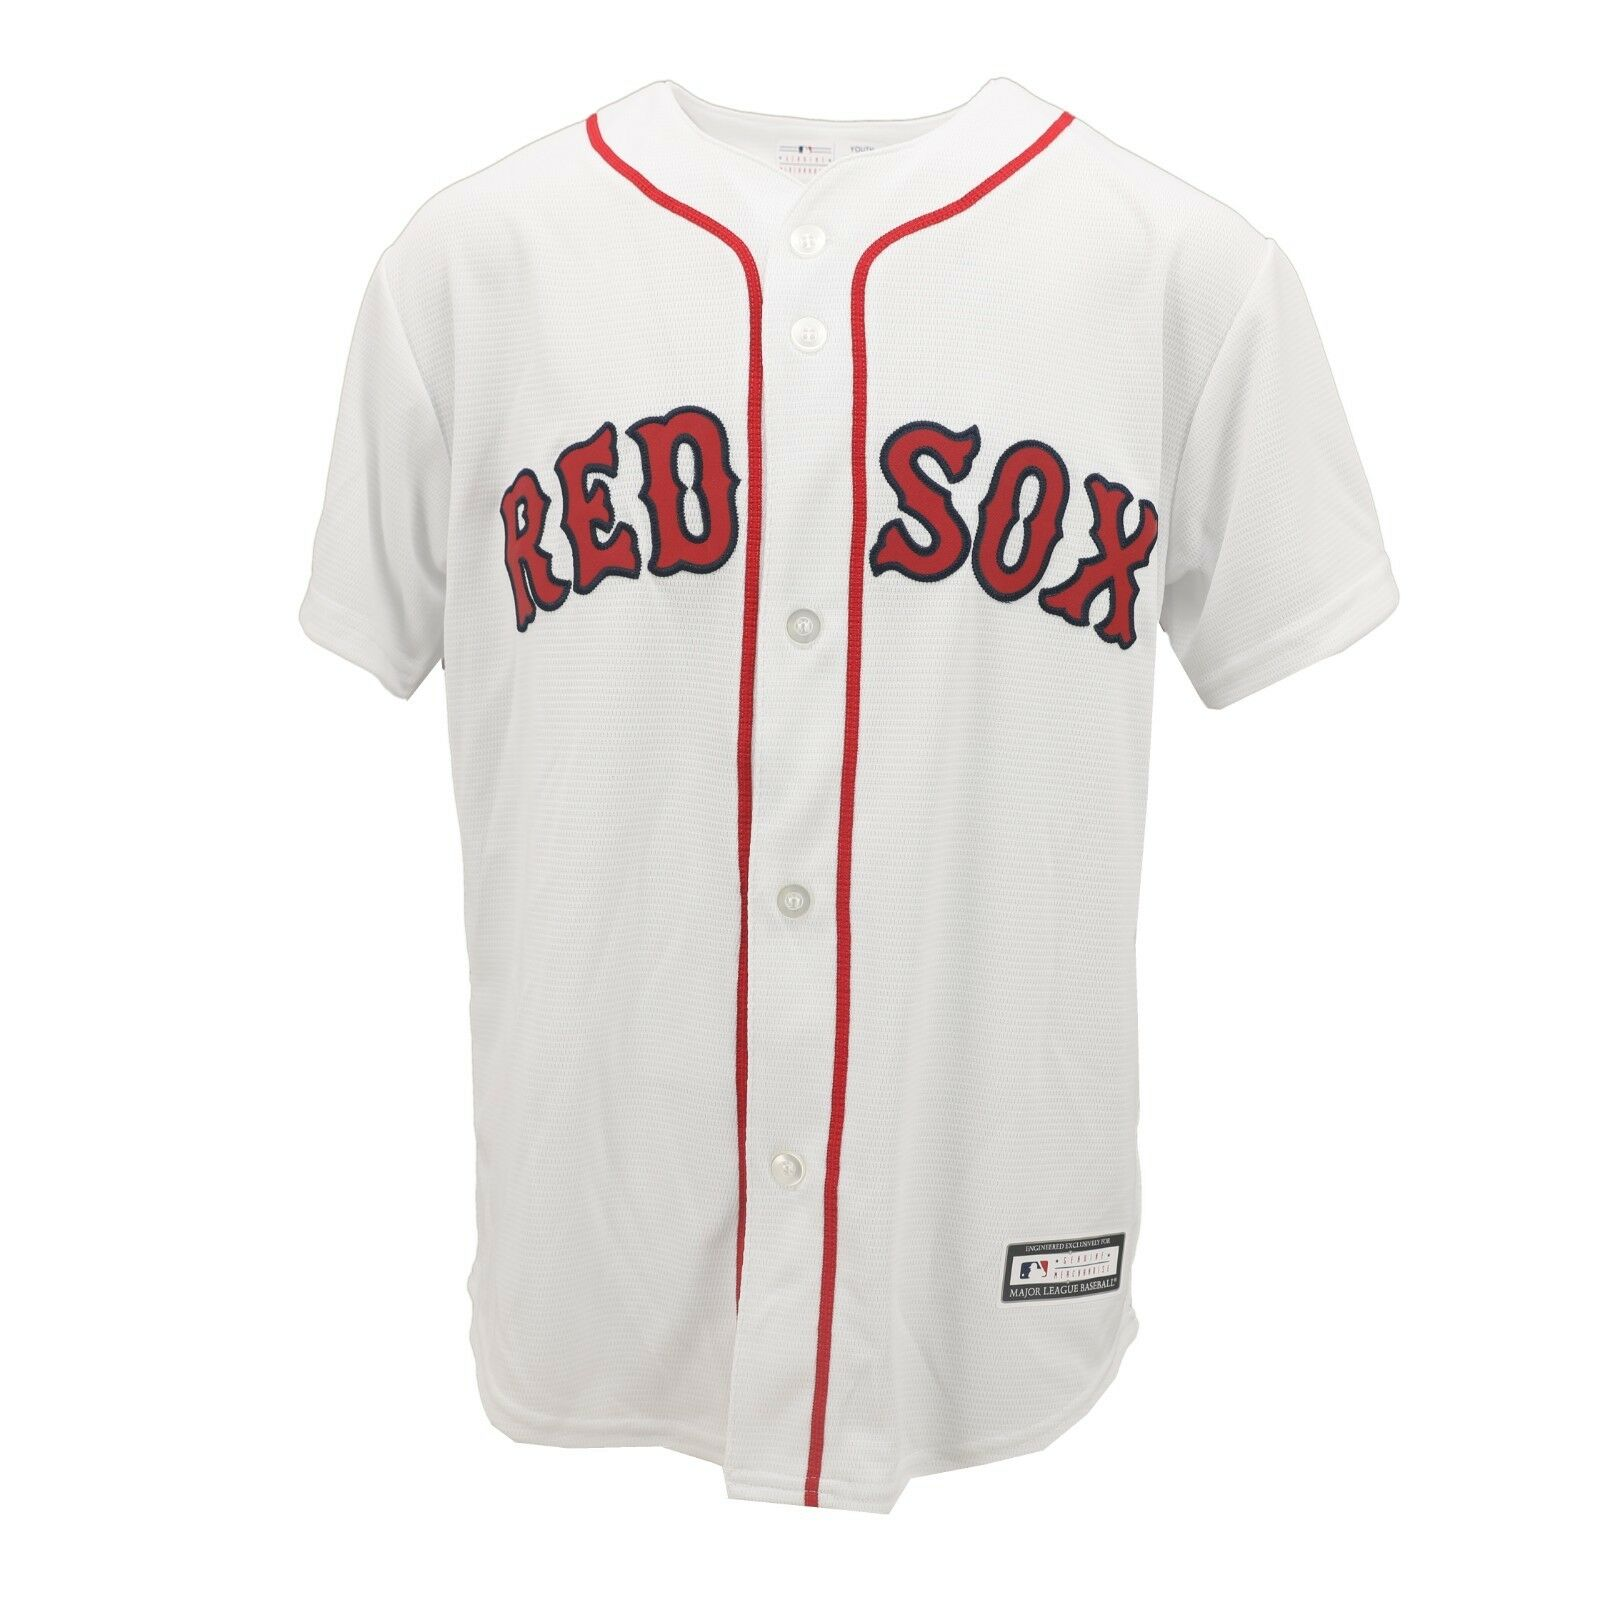 sports shoes 8a5f5 c8774 Details about Boston Red Sox MLB Genuine Kids Youth Size Andrew Benintendi  Jersey New Tags